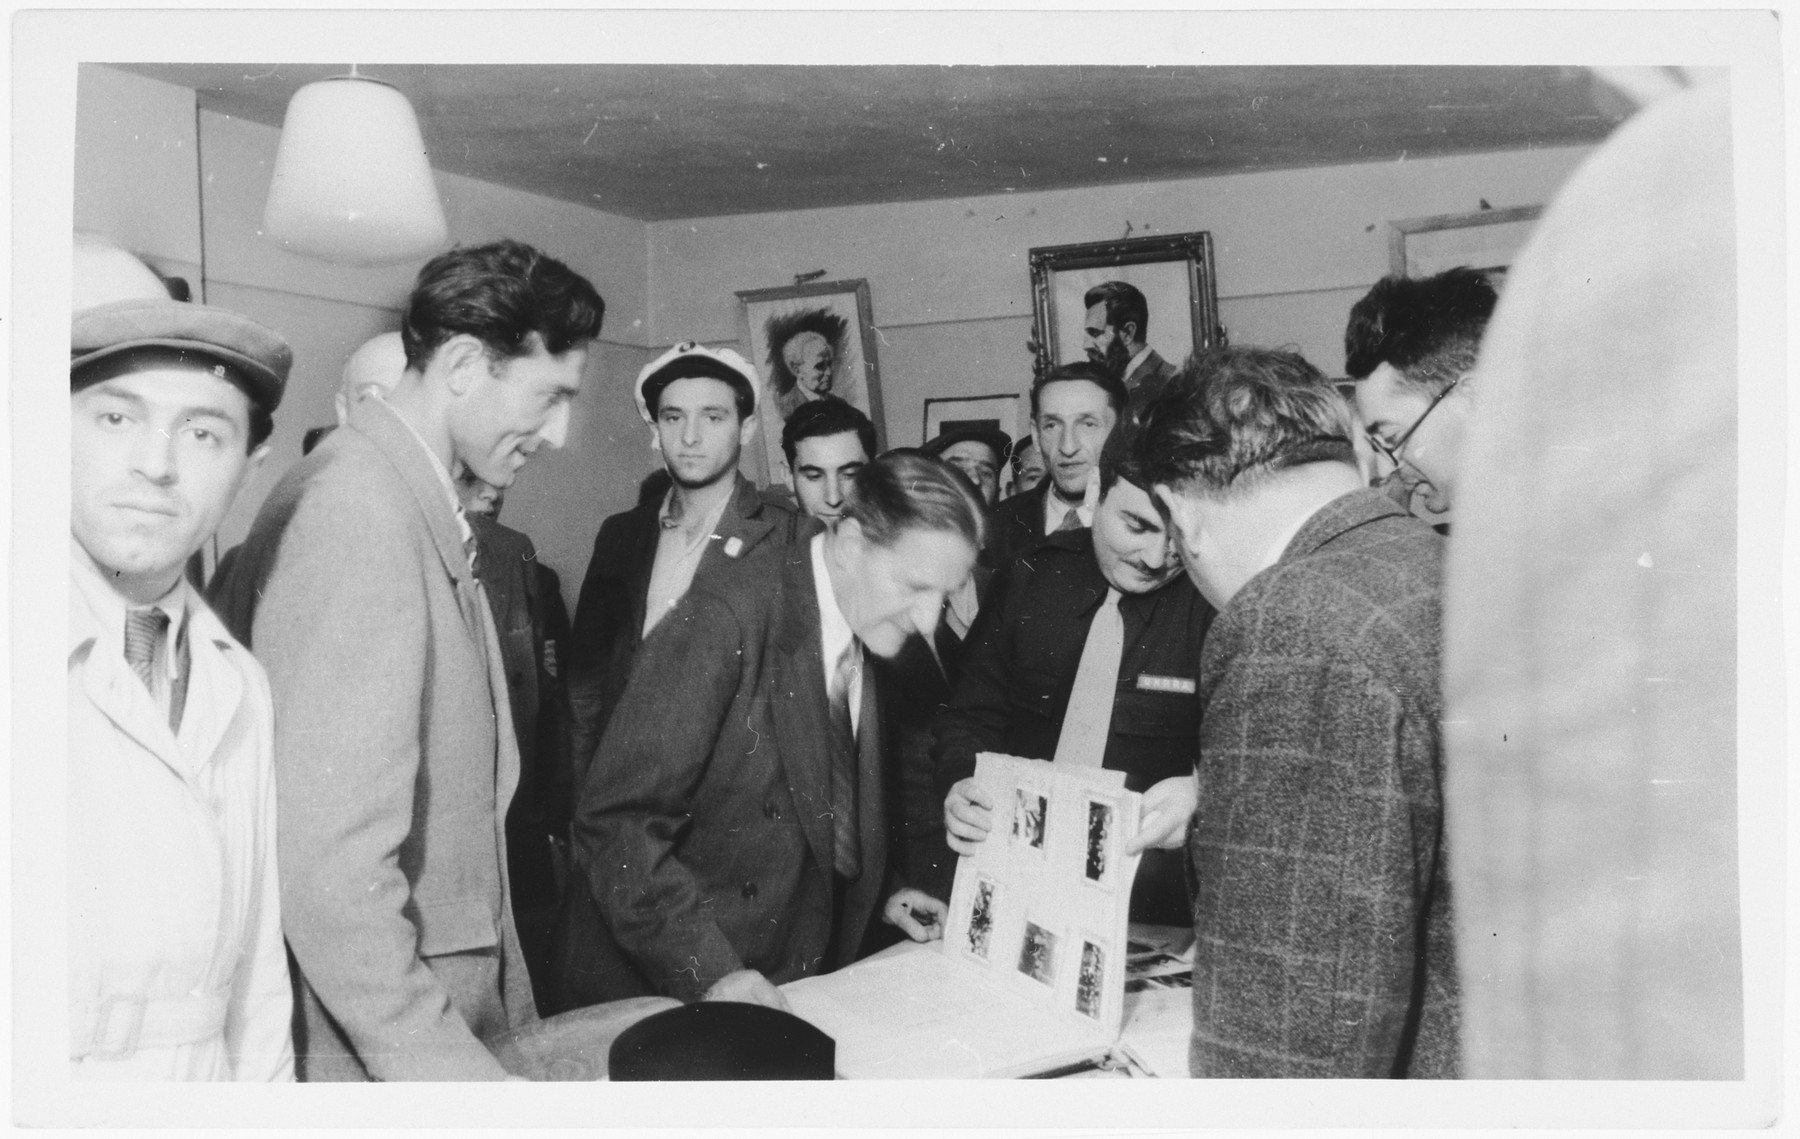 Rabbi Stephen Wise looks at a photo album during his visit to the Zeilsheim displaced persons' camp.